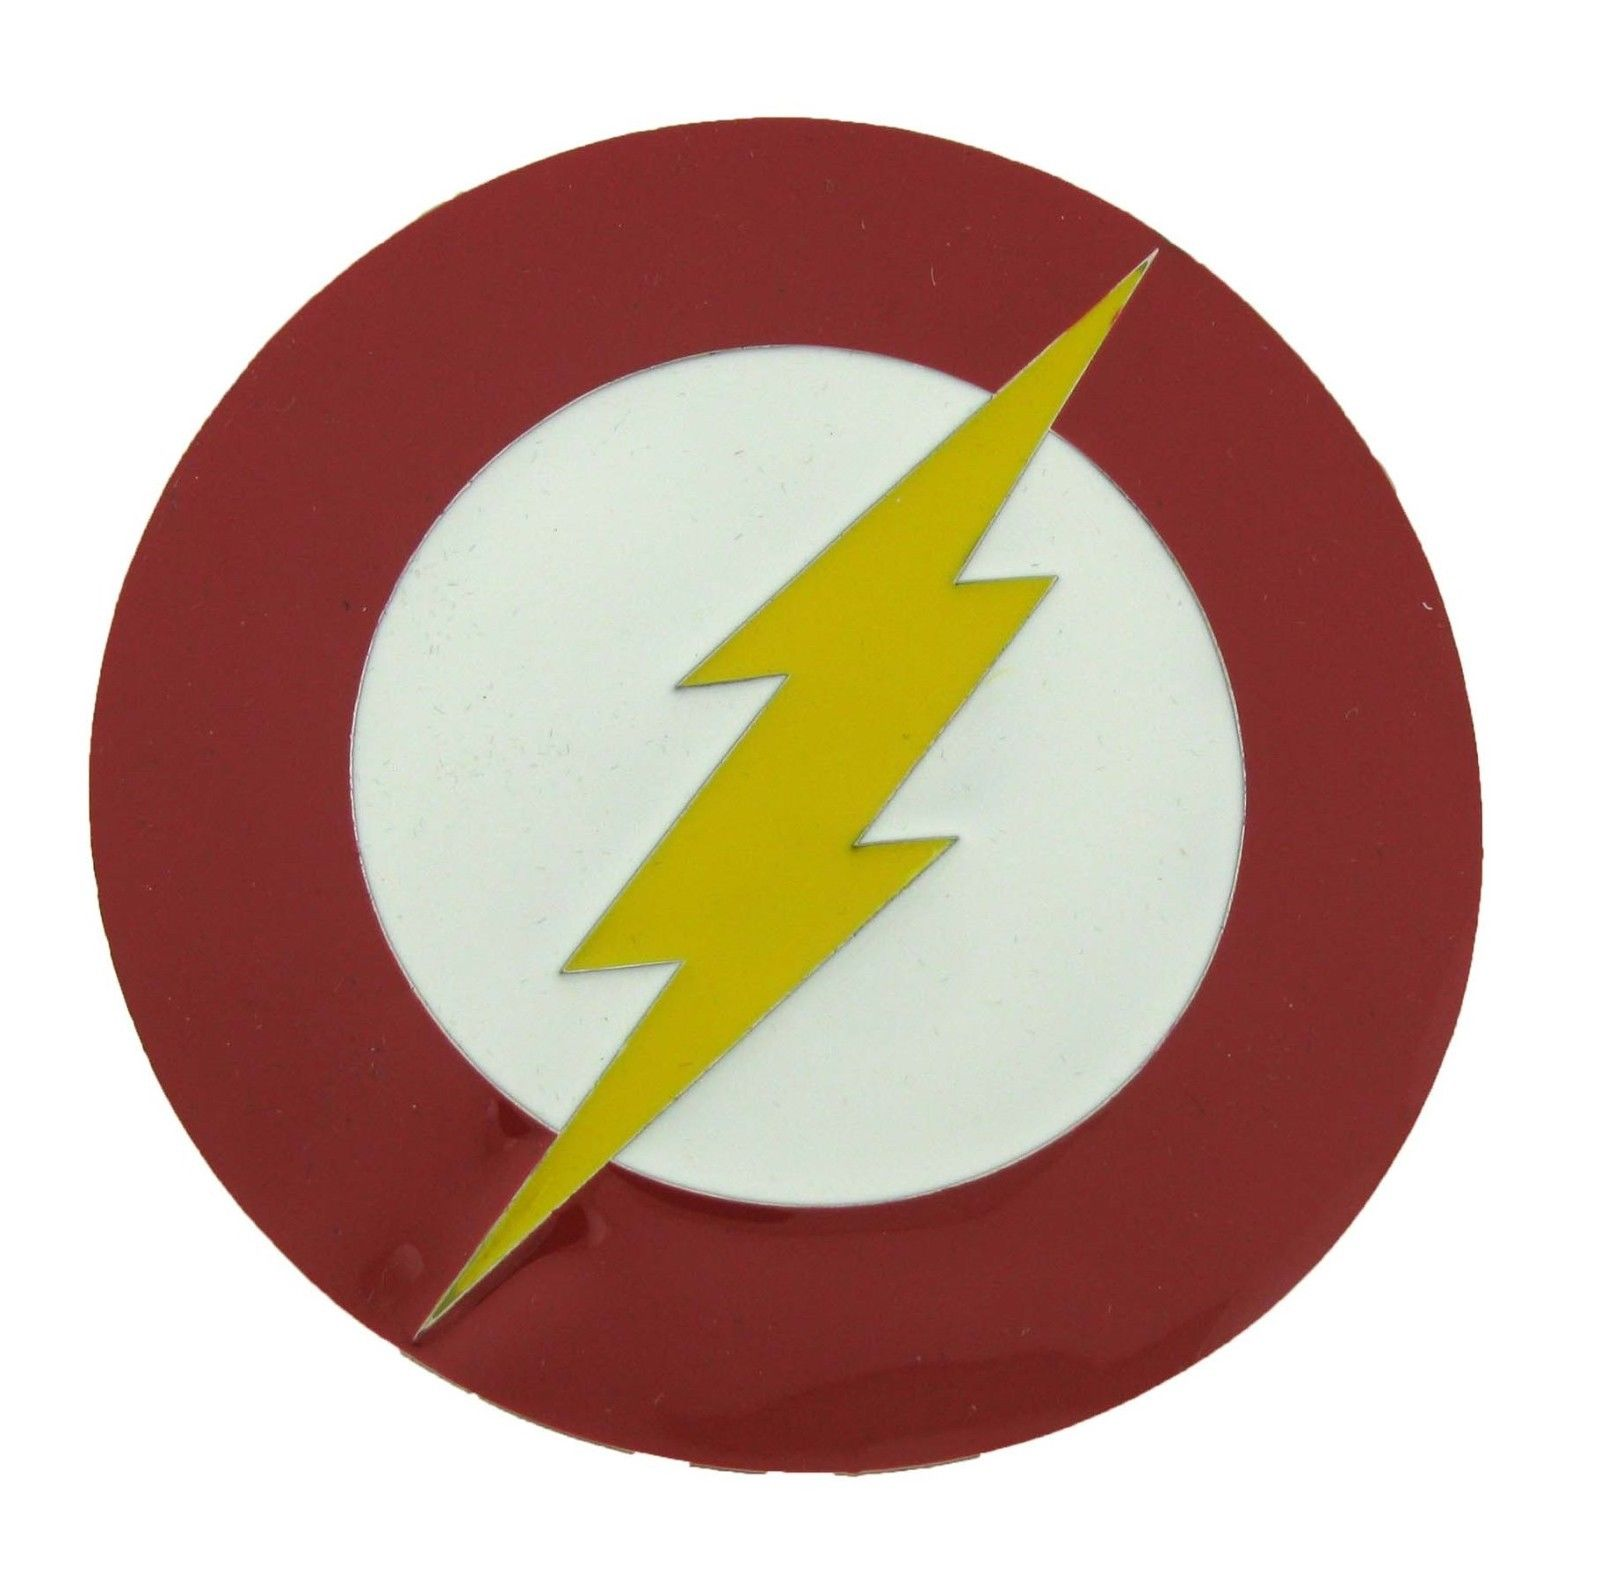 The Flash Belt Buckle Lighting Bolt Halloween Costume Metal Fashion Gift New DC